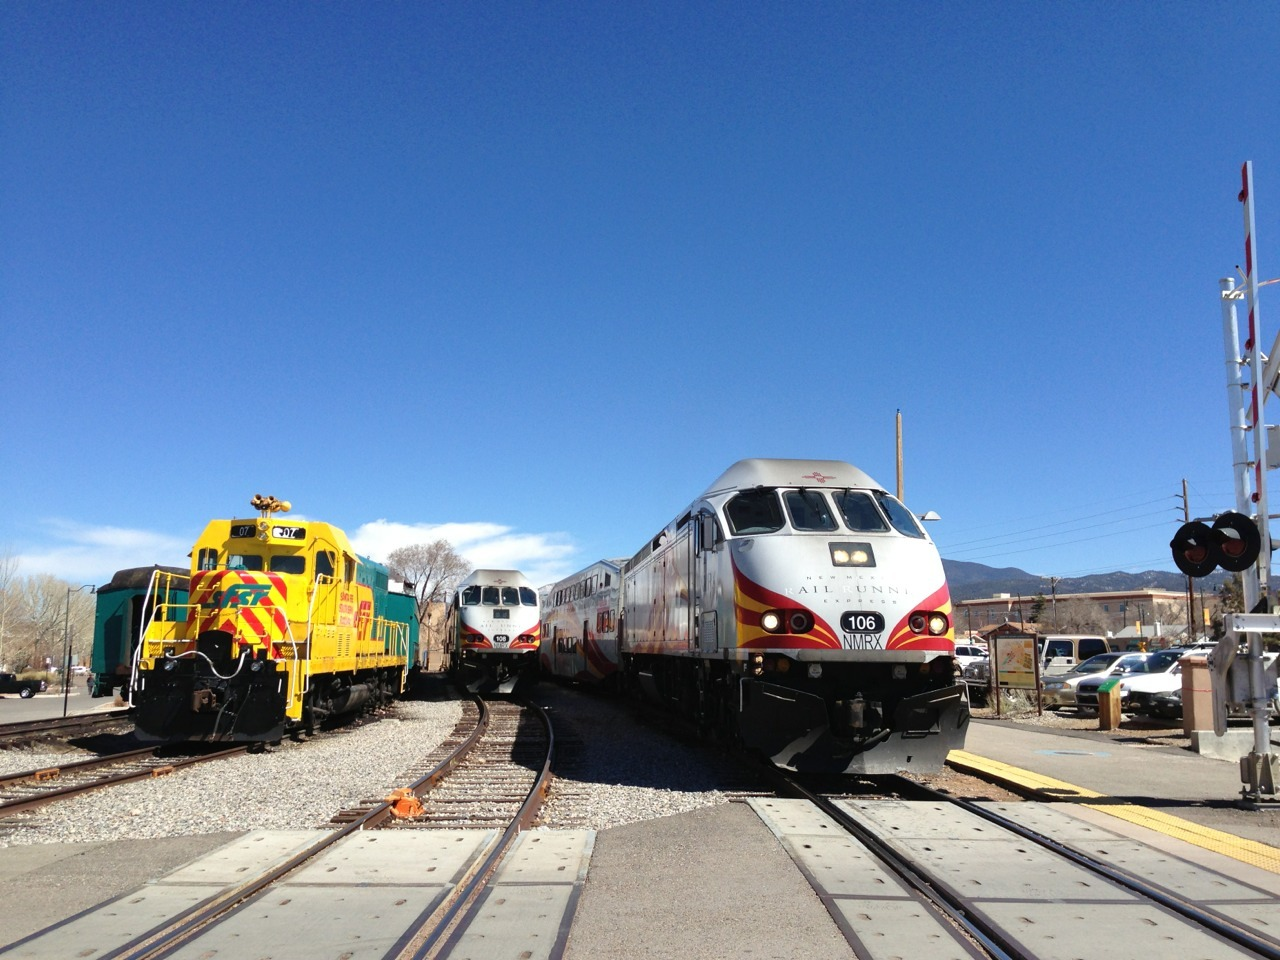 A couple of New Mexico Rail Runners and a Santa Fe Southern Railway sitting at the Santa Fe Rail Runner Station.